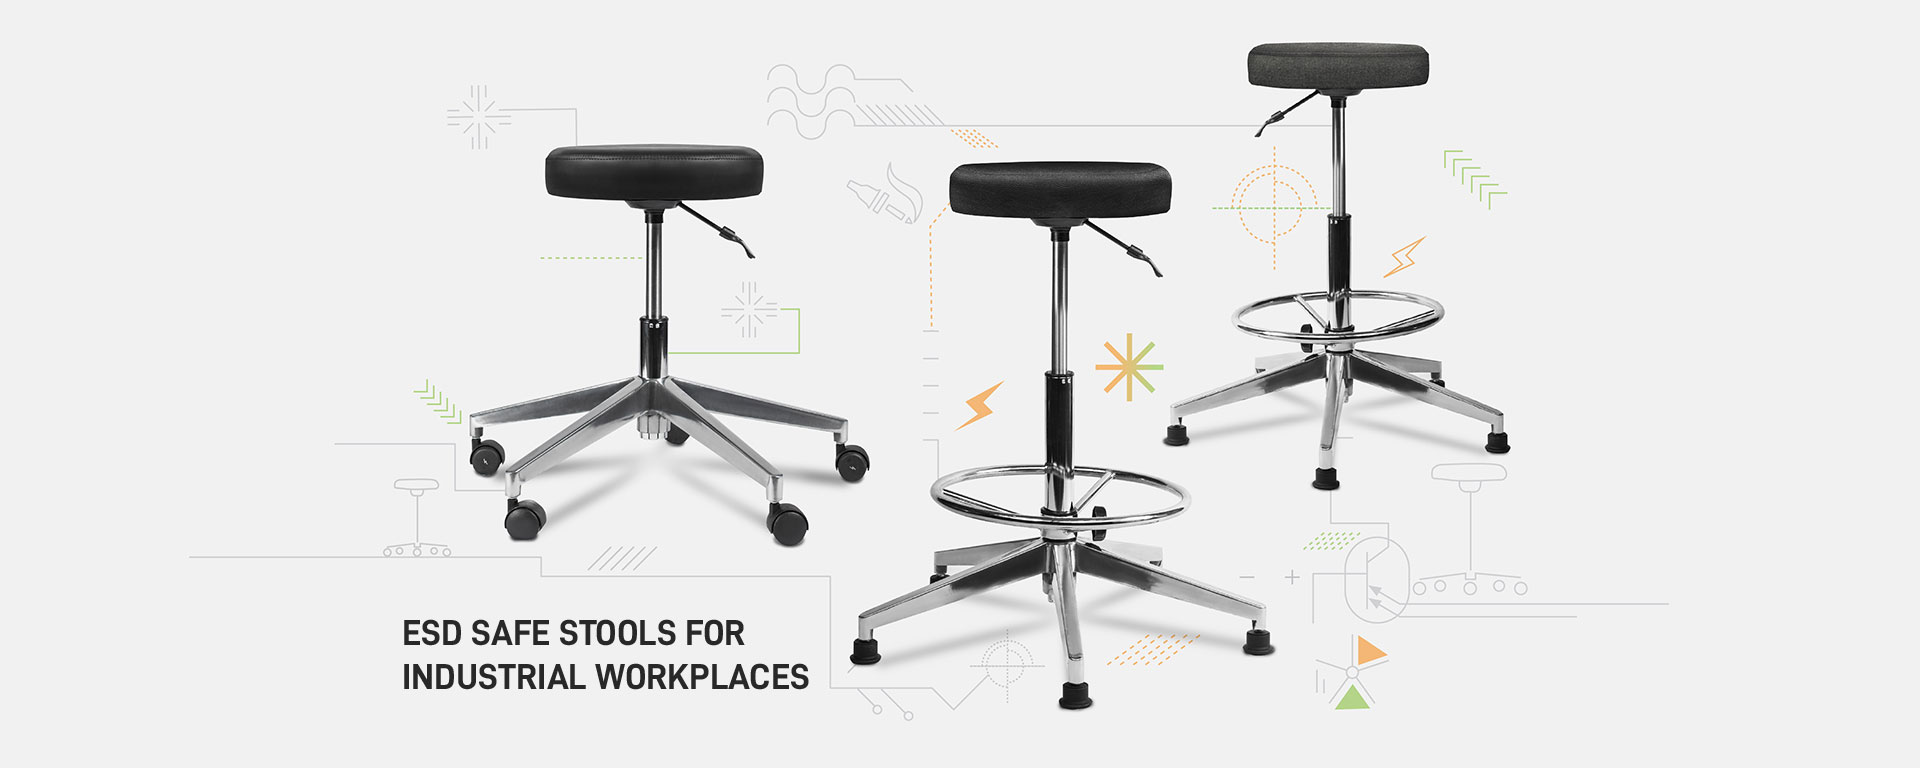 esd safe office stool